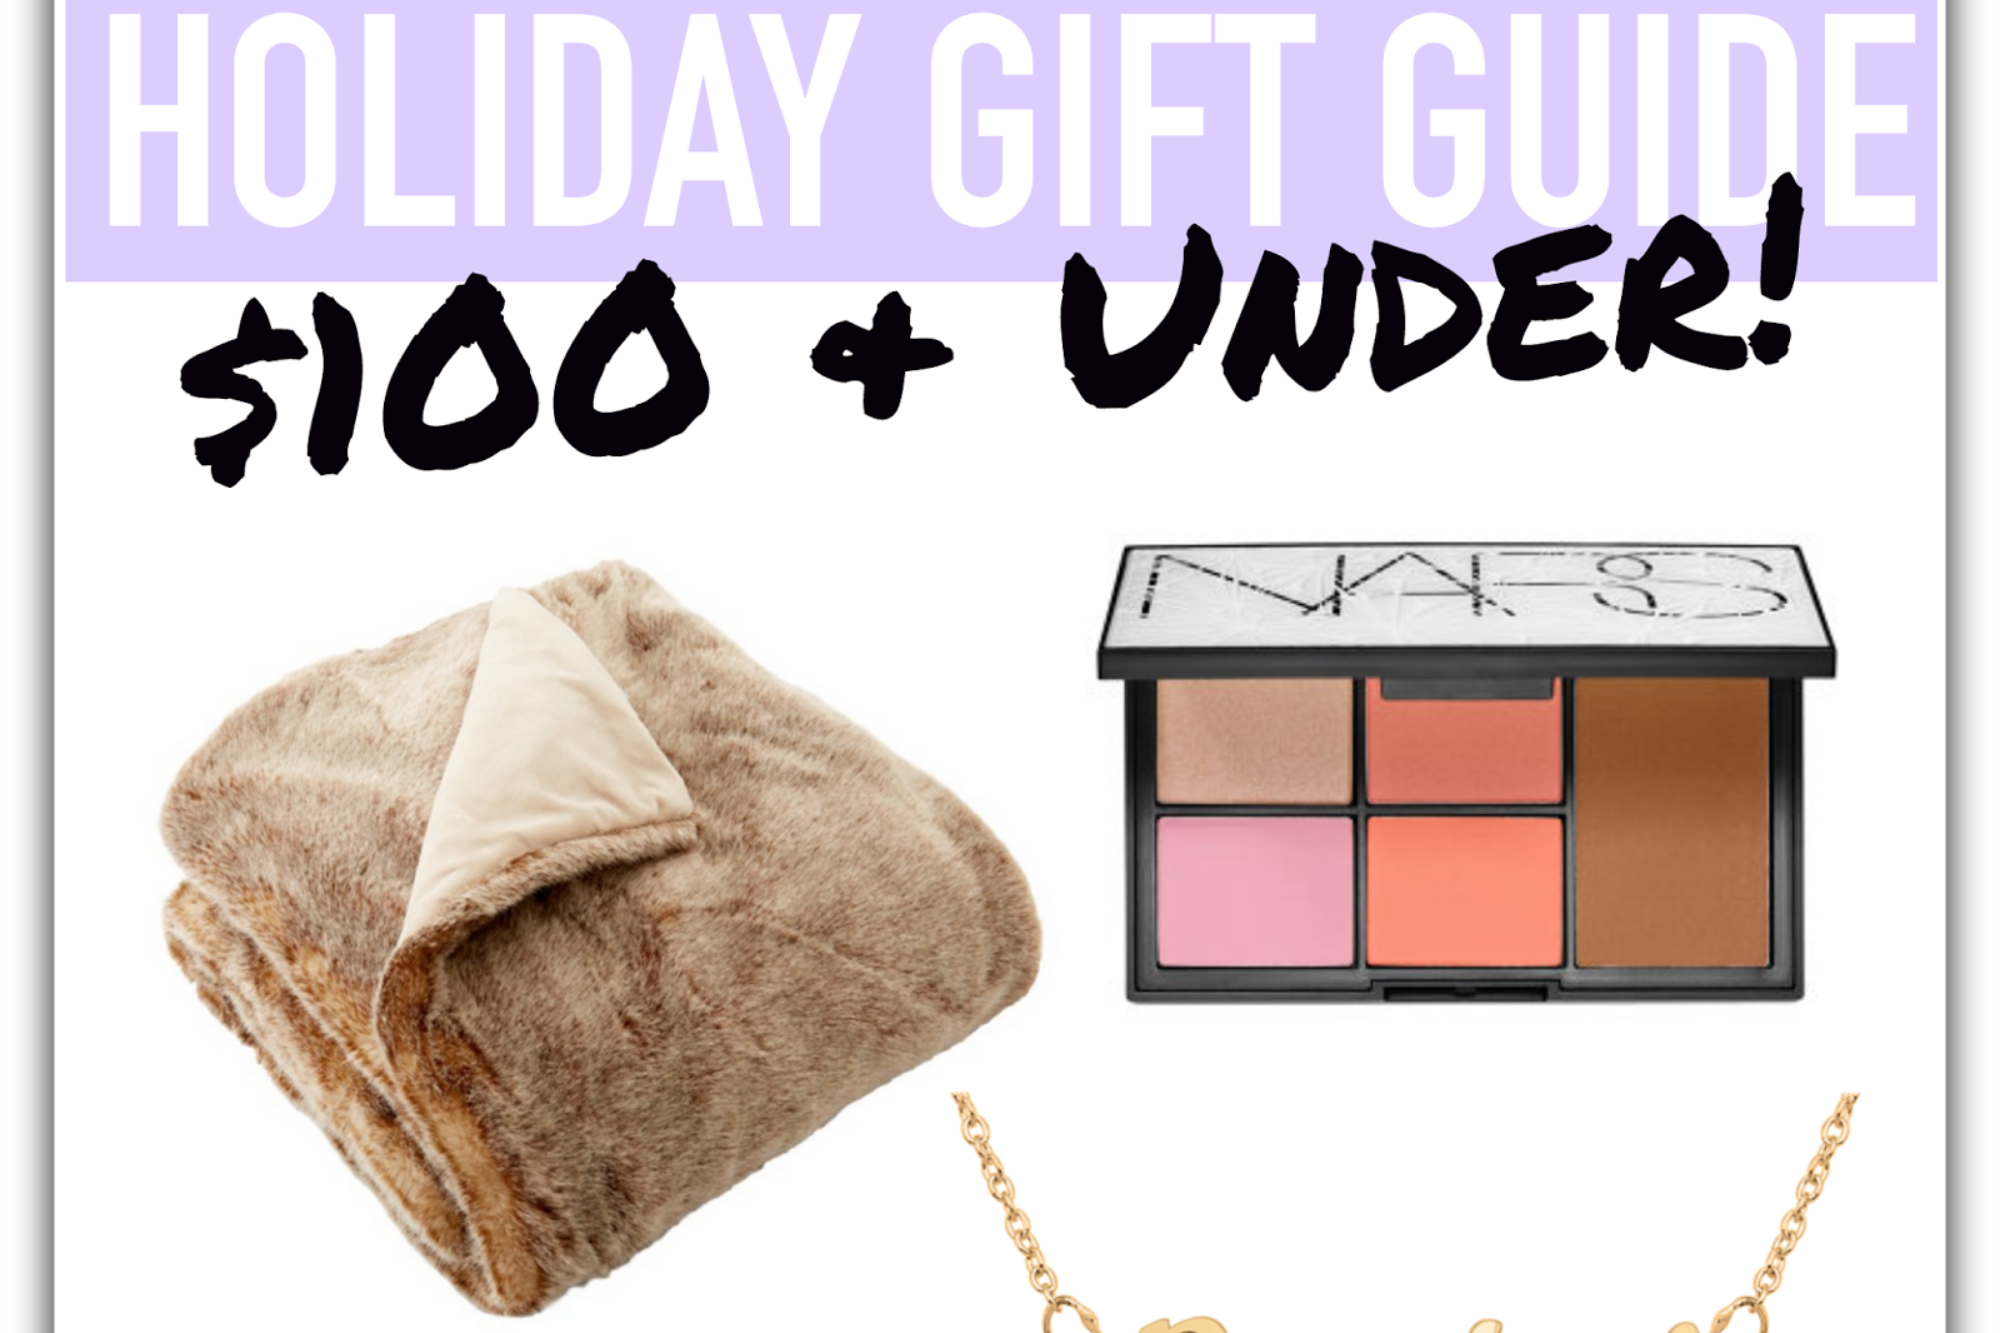 HOLIDAY GIFT GUIDE 2014: $100 & Under!